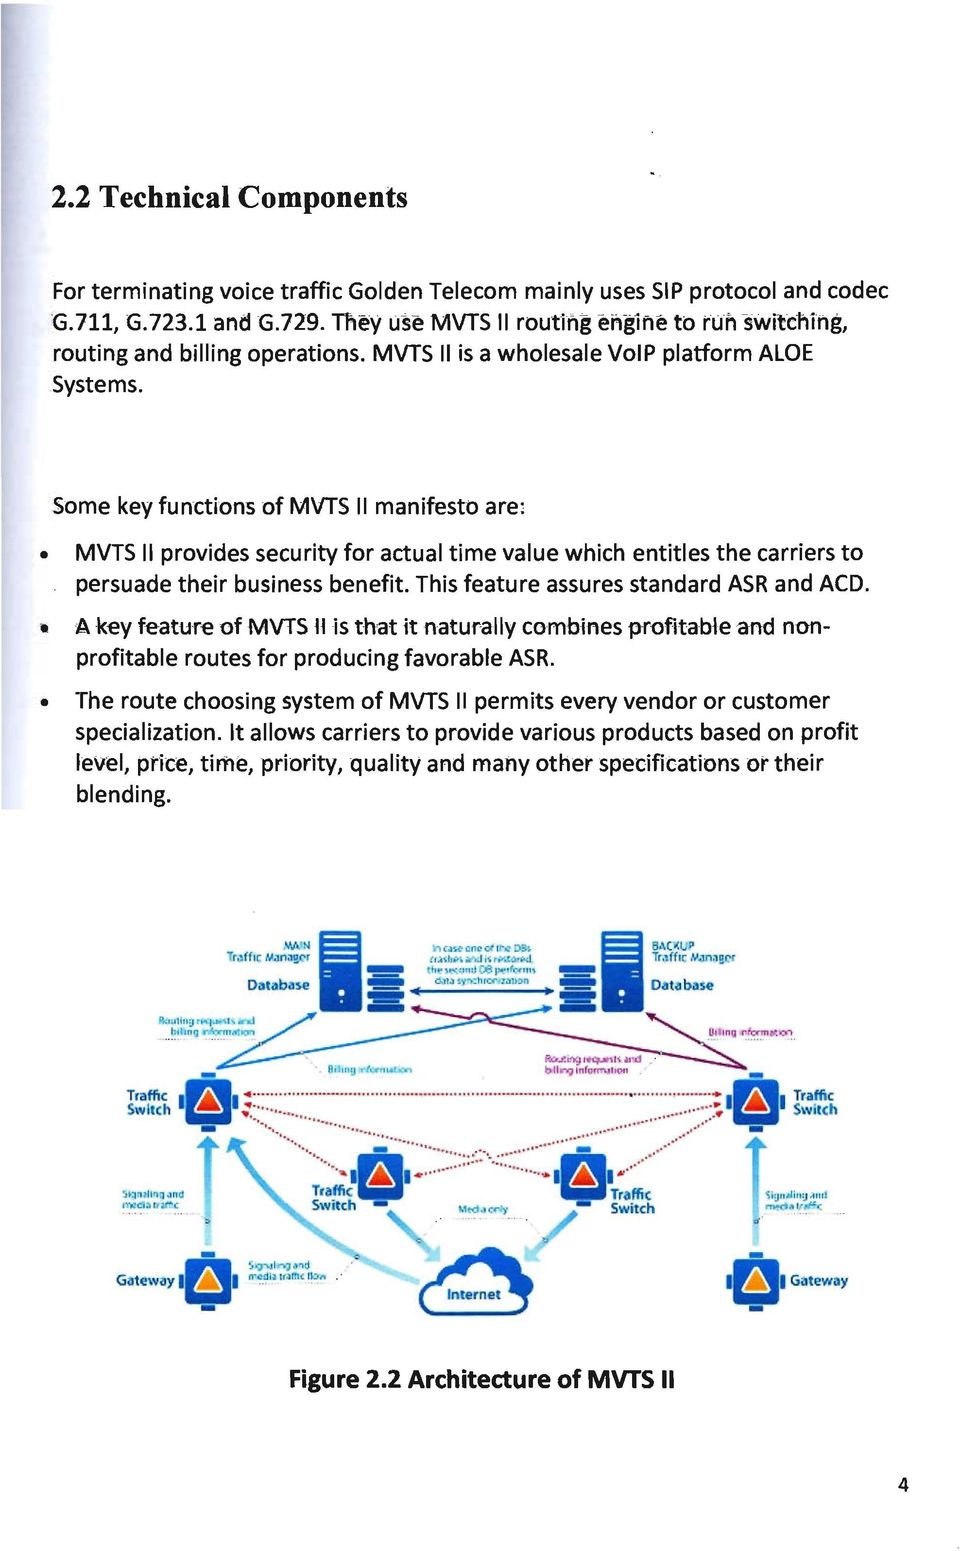 Some key functions of MVTS II manifesto are; MVTS II provides security for actual time value which entitles the carriers to persuade their business benefit. This feature assures standard ASR and ACD.